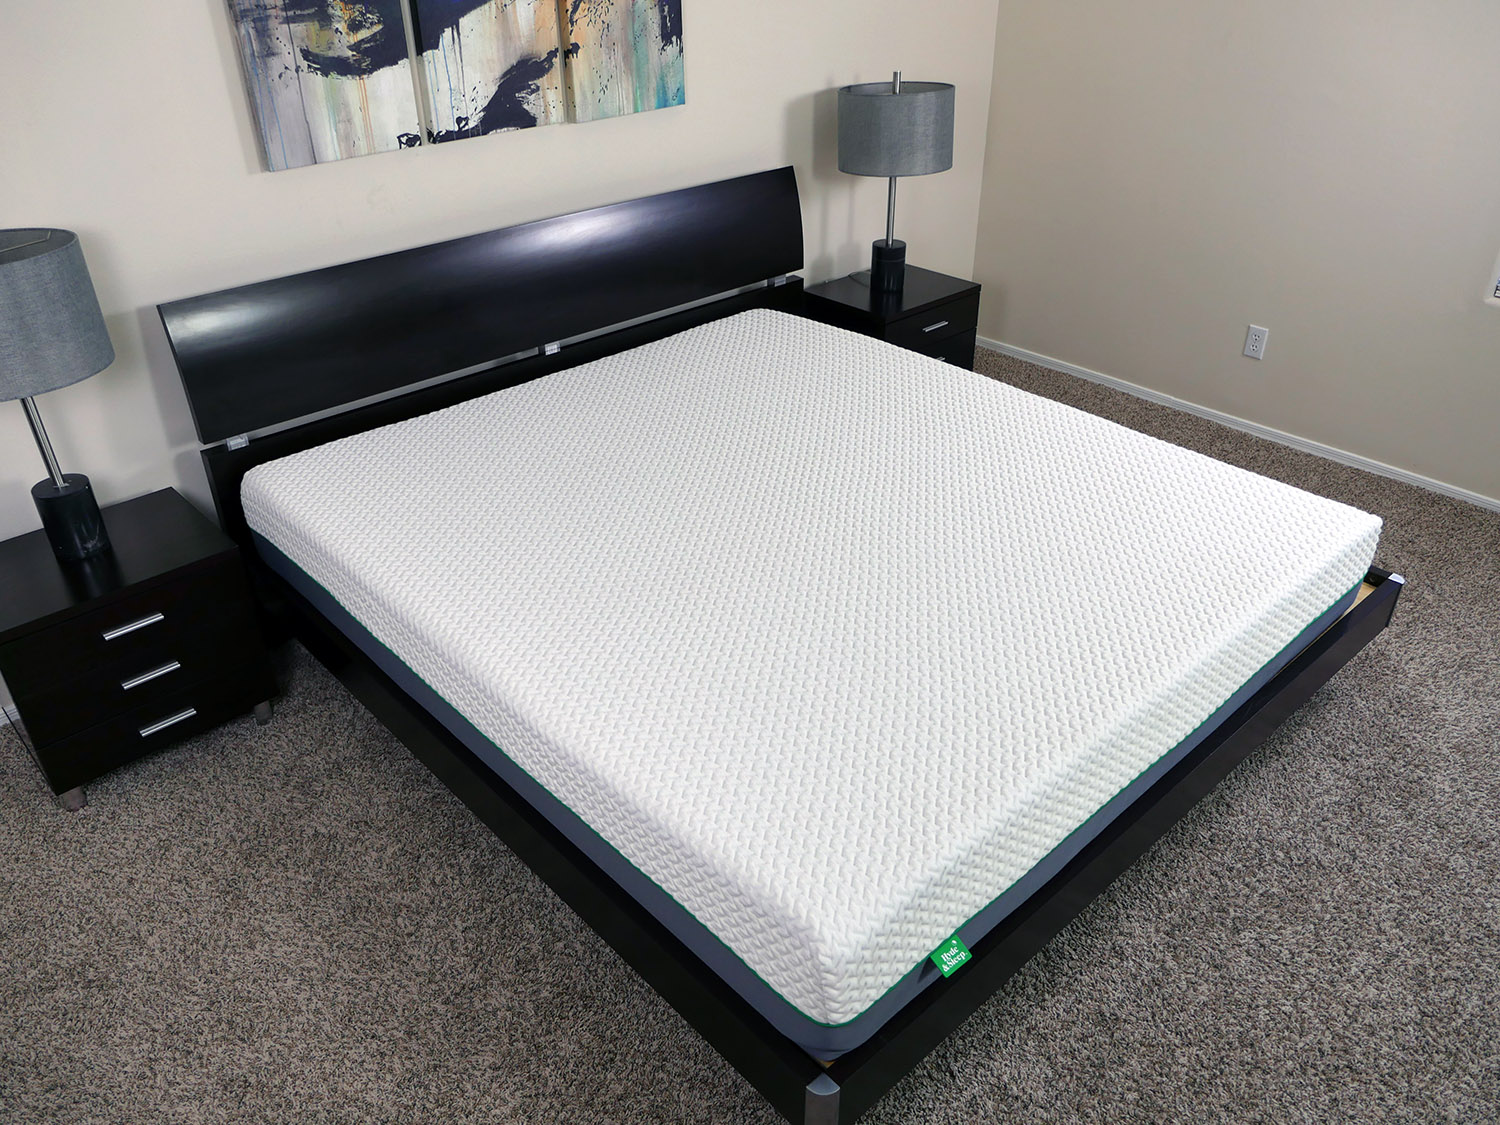 Angled view of the memory foam Hyde & Sleep mattress